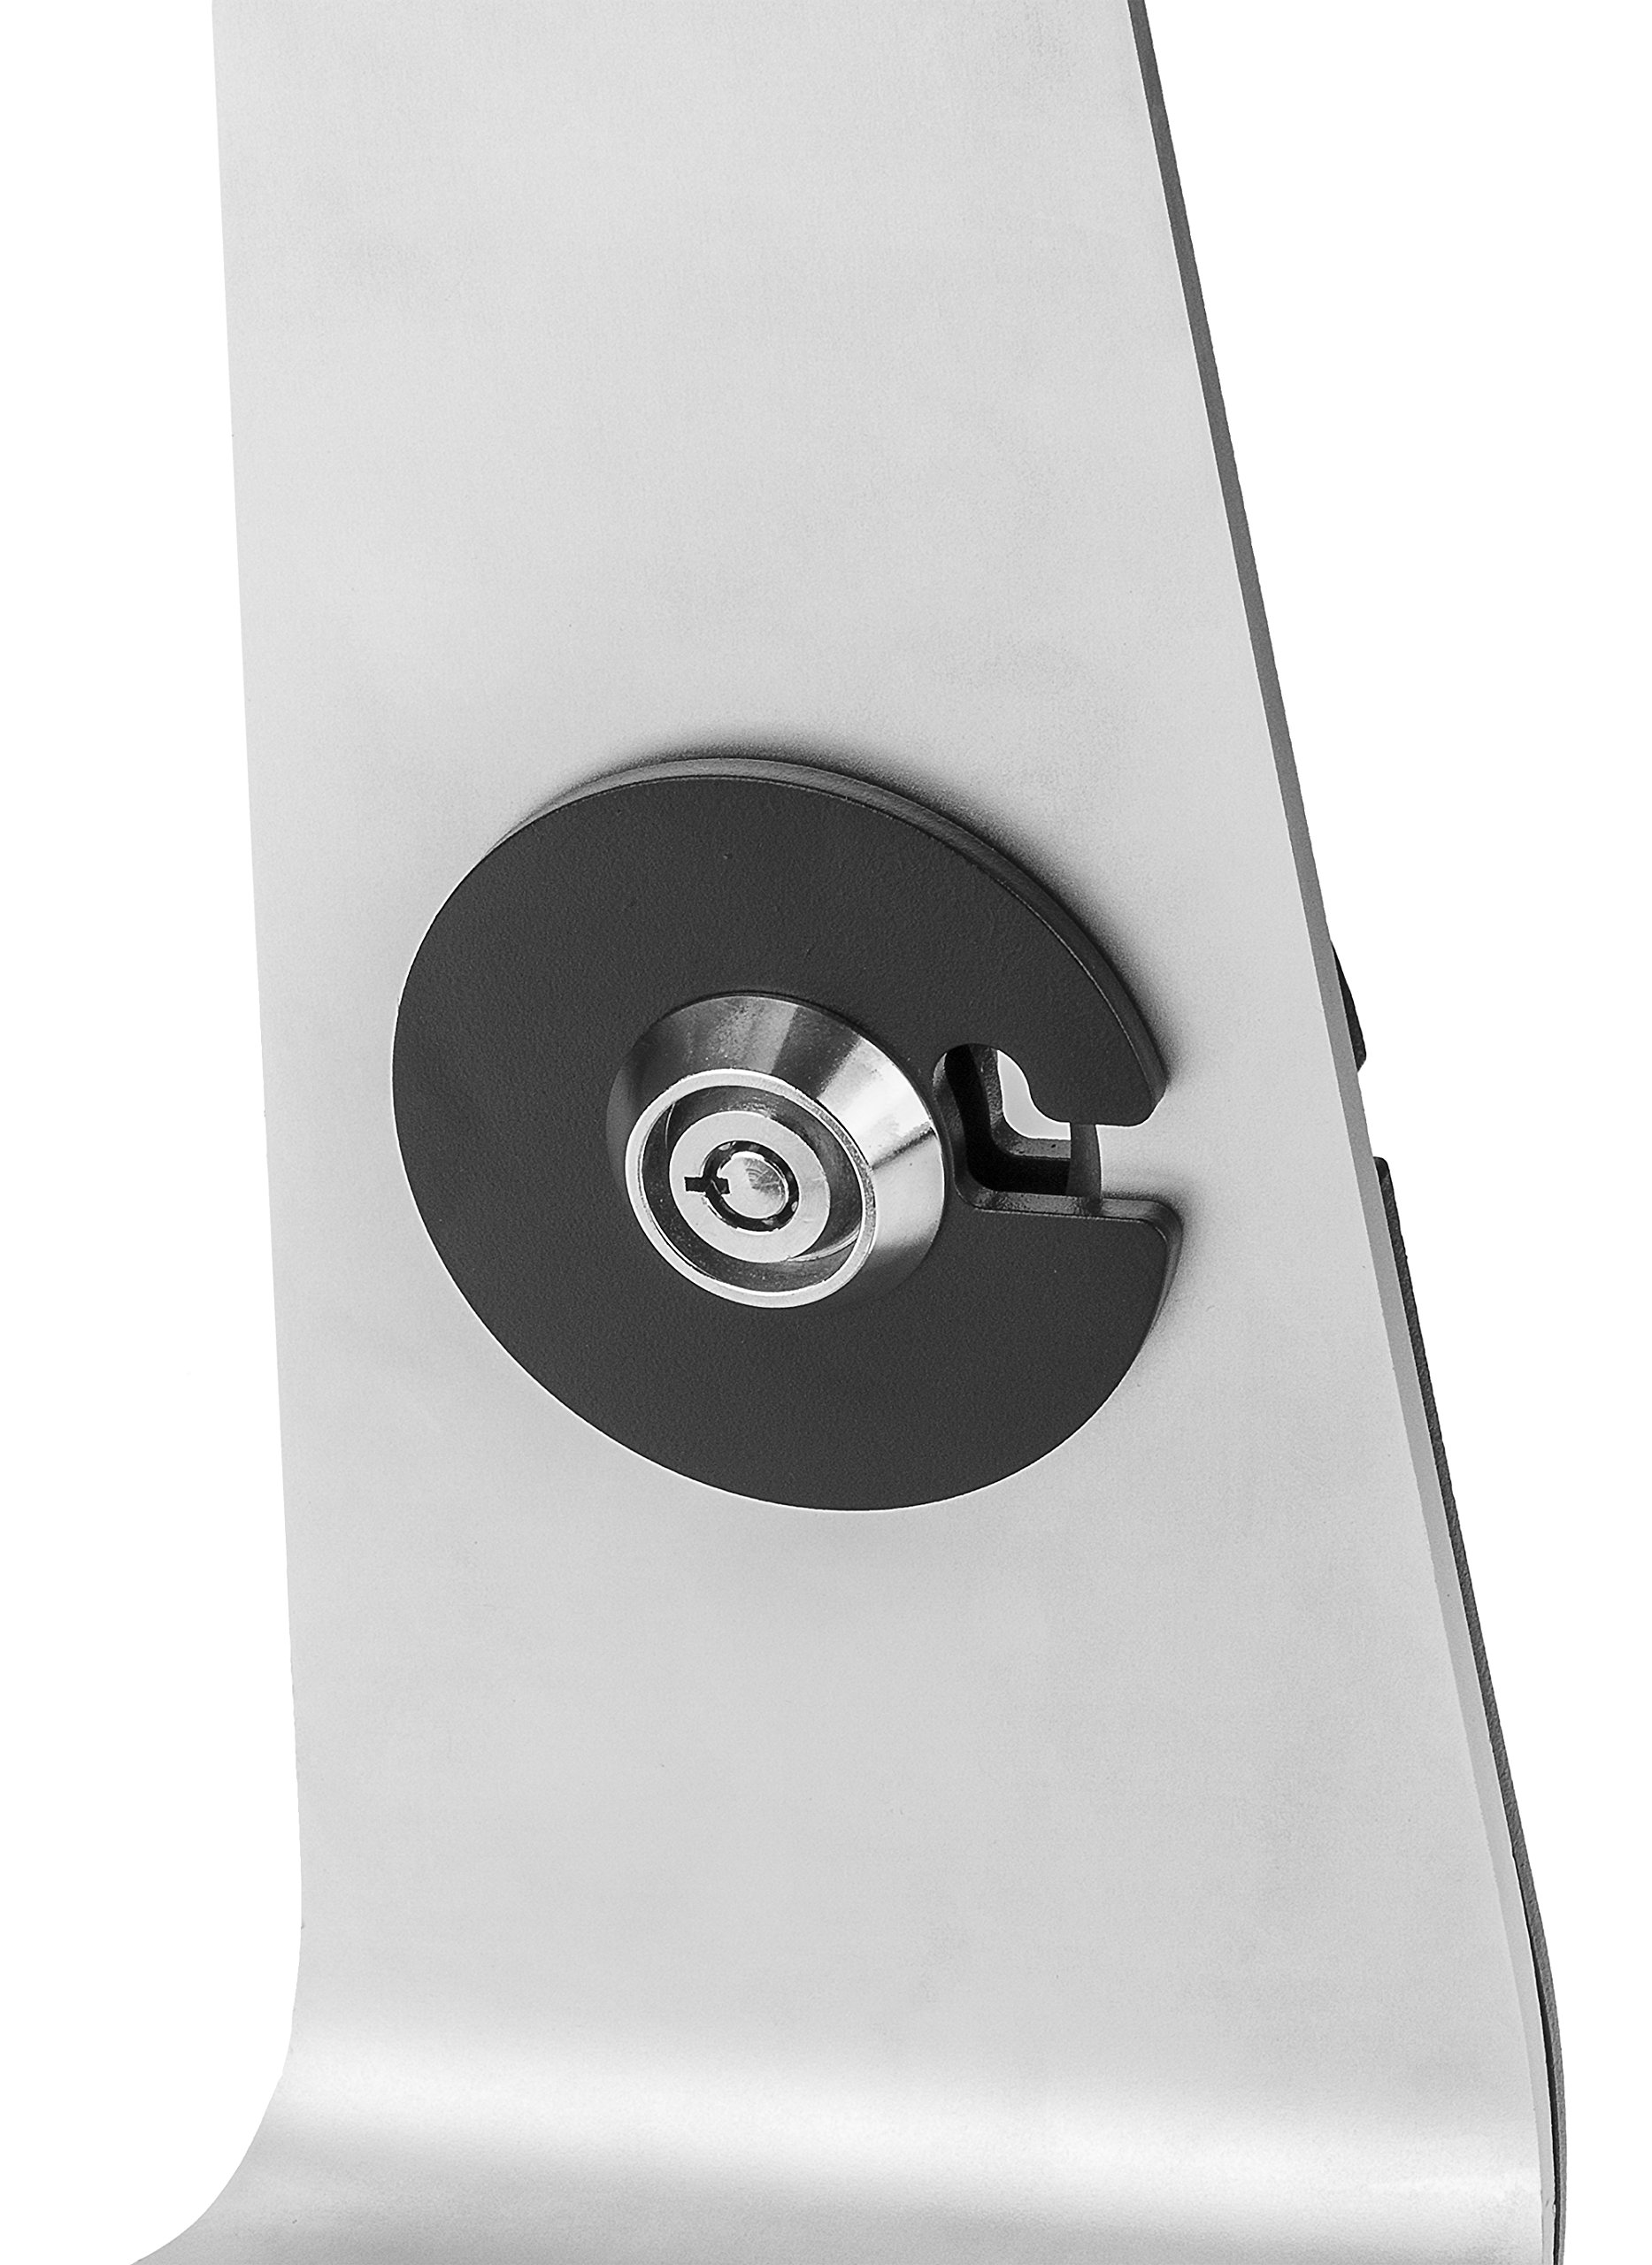 SecurityXtra Rackmini Anti-Theft Security Lock Enclosure for Mac Mini and Server by SecurityXtra (Image #5)